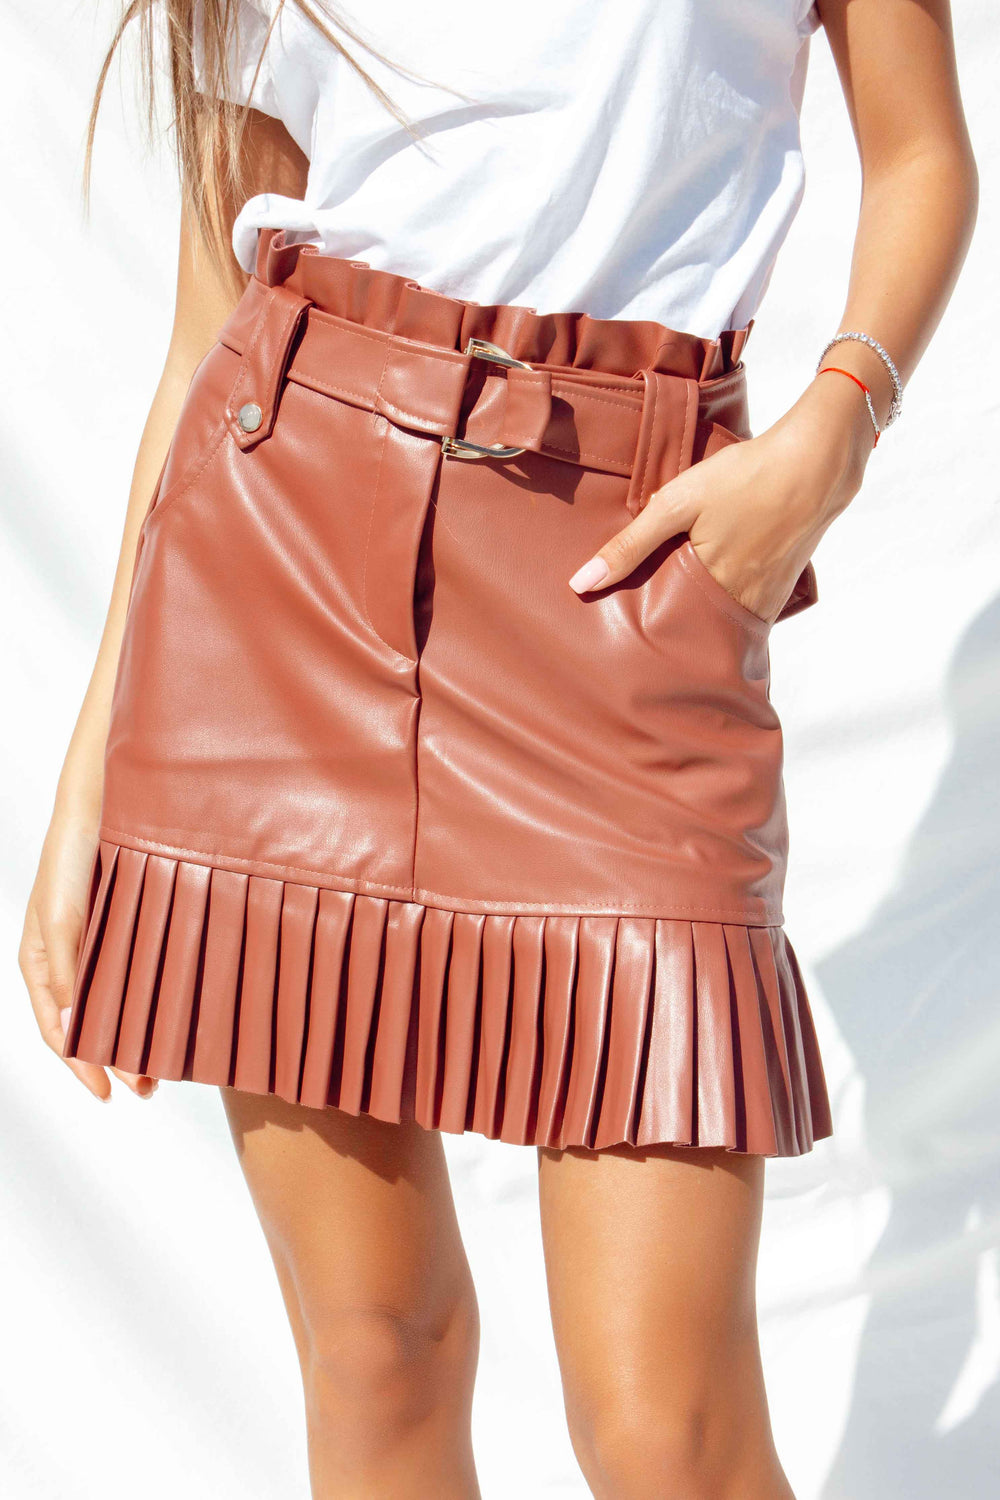 SILVIA SKIRT - Chic Le Frique